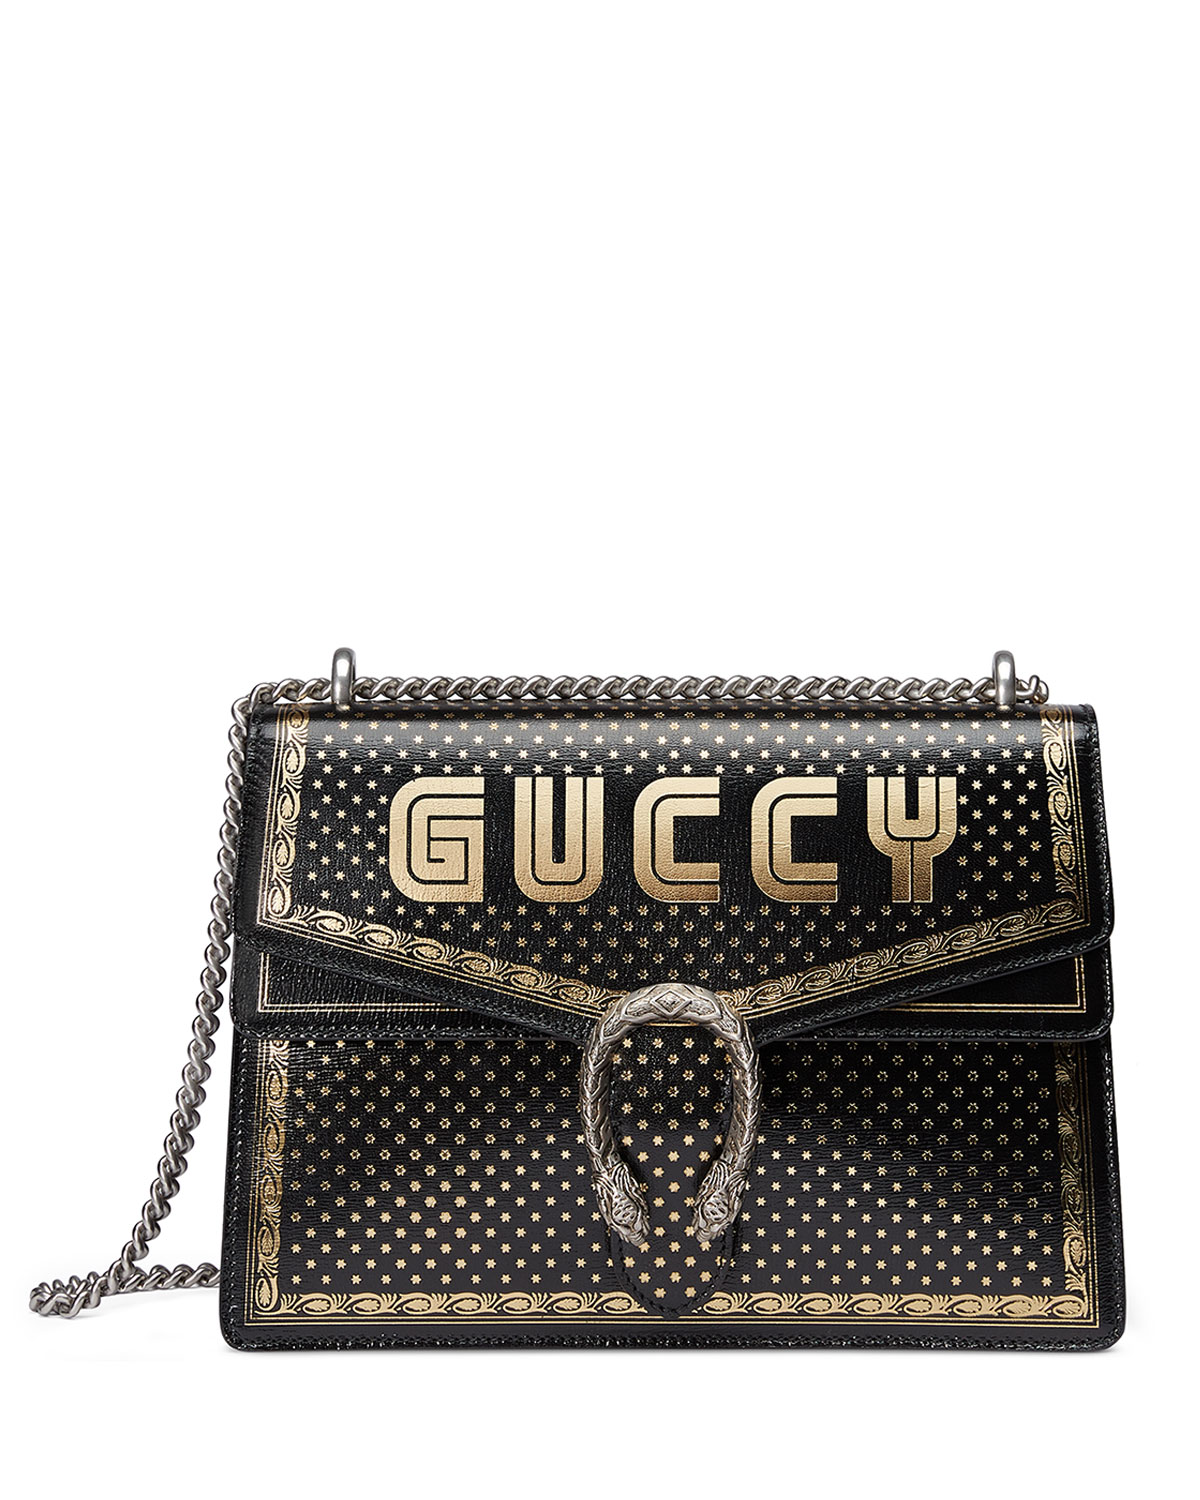 6001896913fac4 Gucci Dionysus GUCCY Medium Leather Shoulder Bag | Neiman Marcus